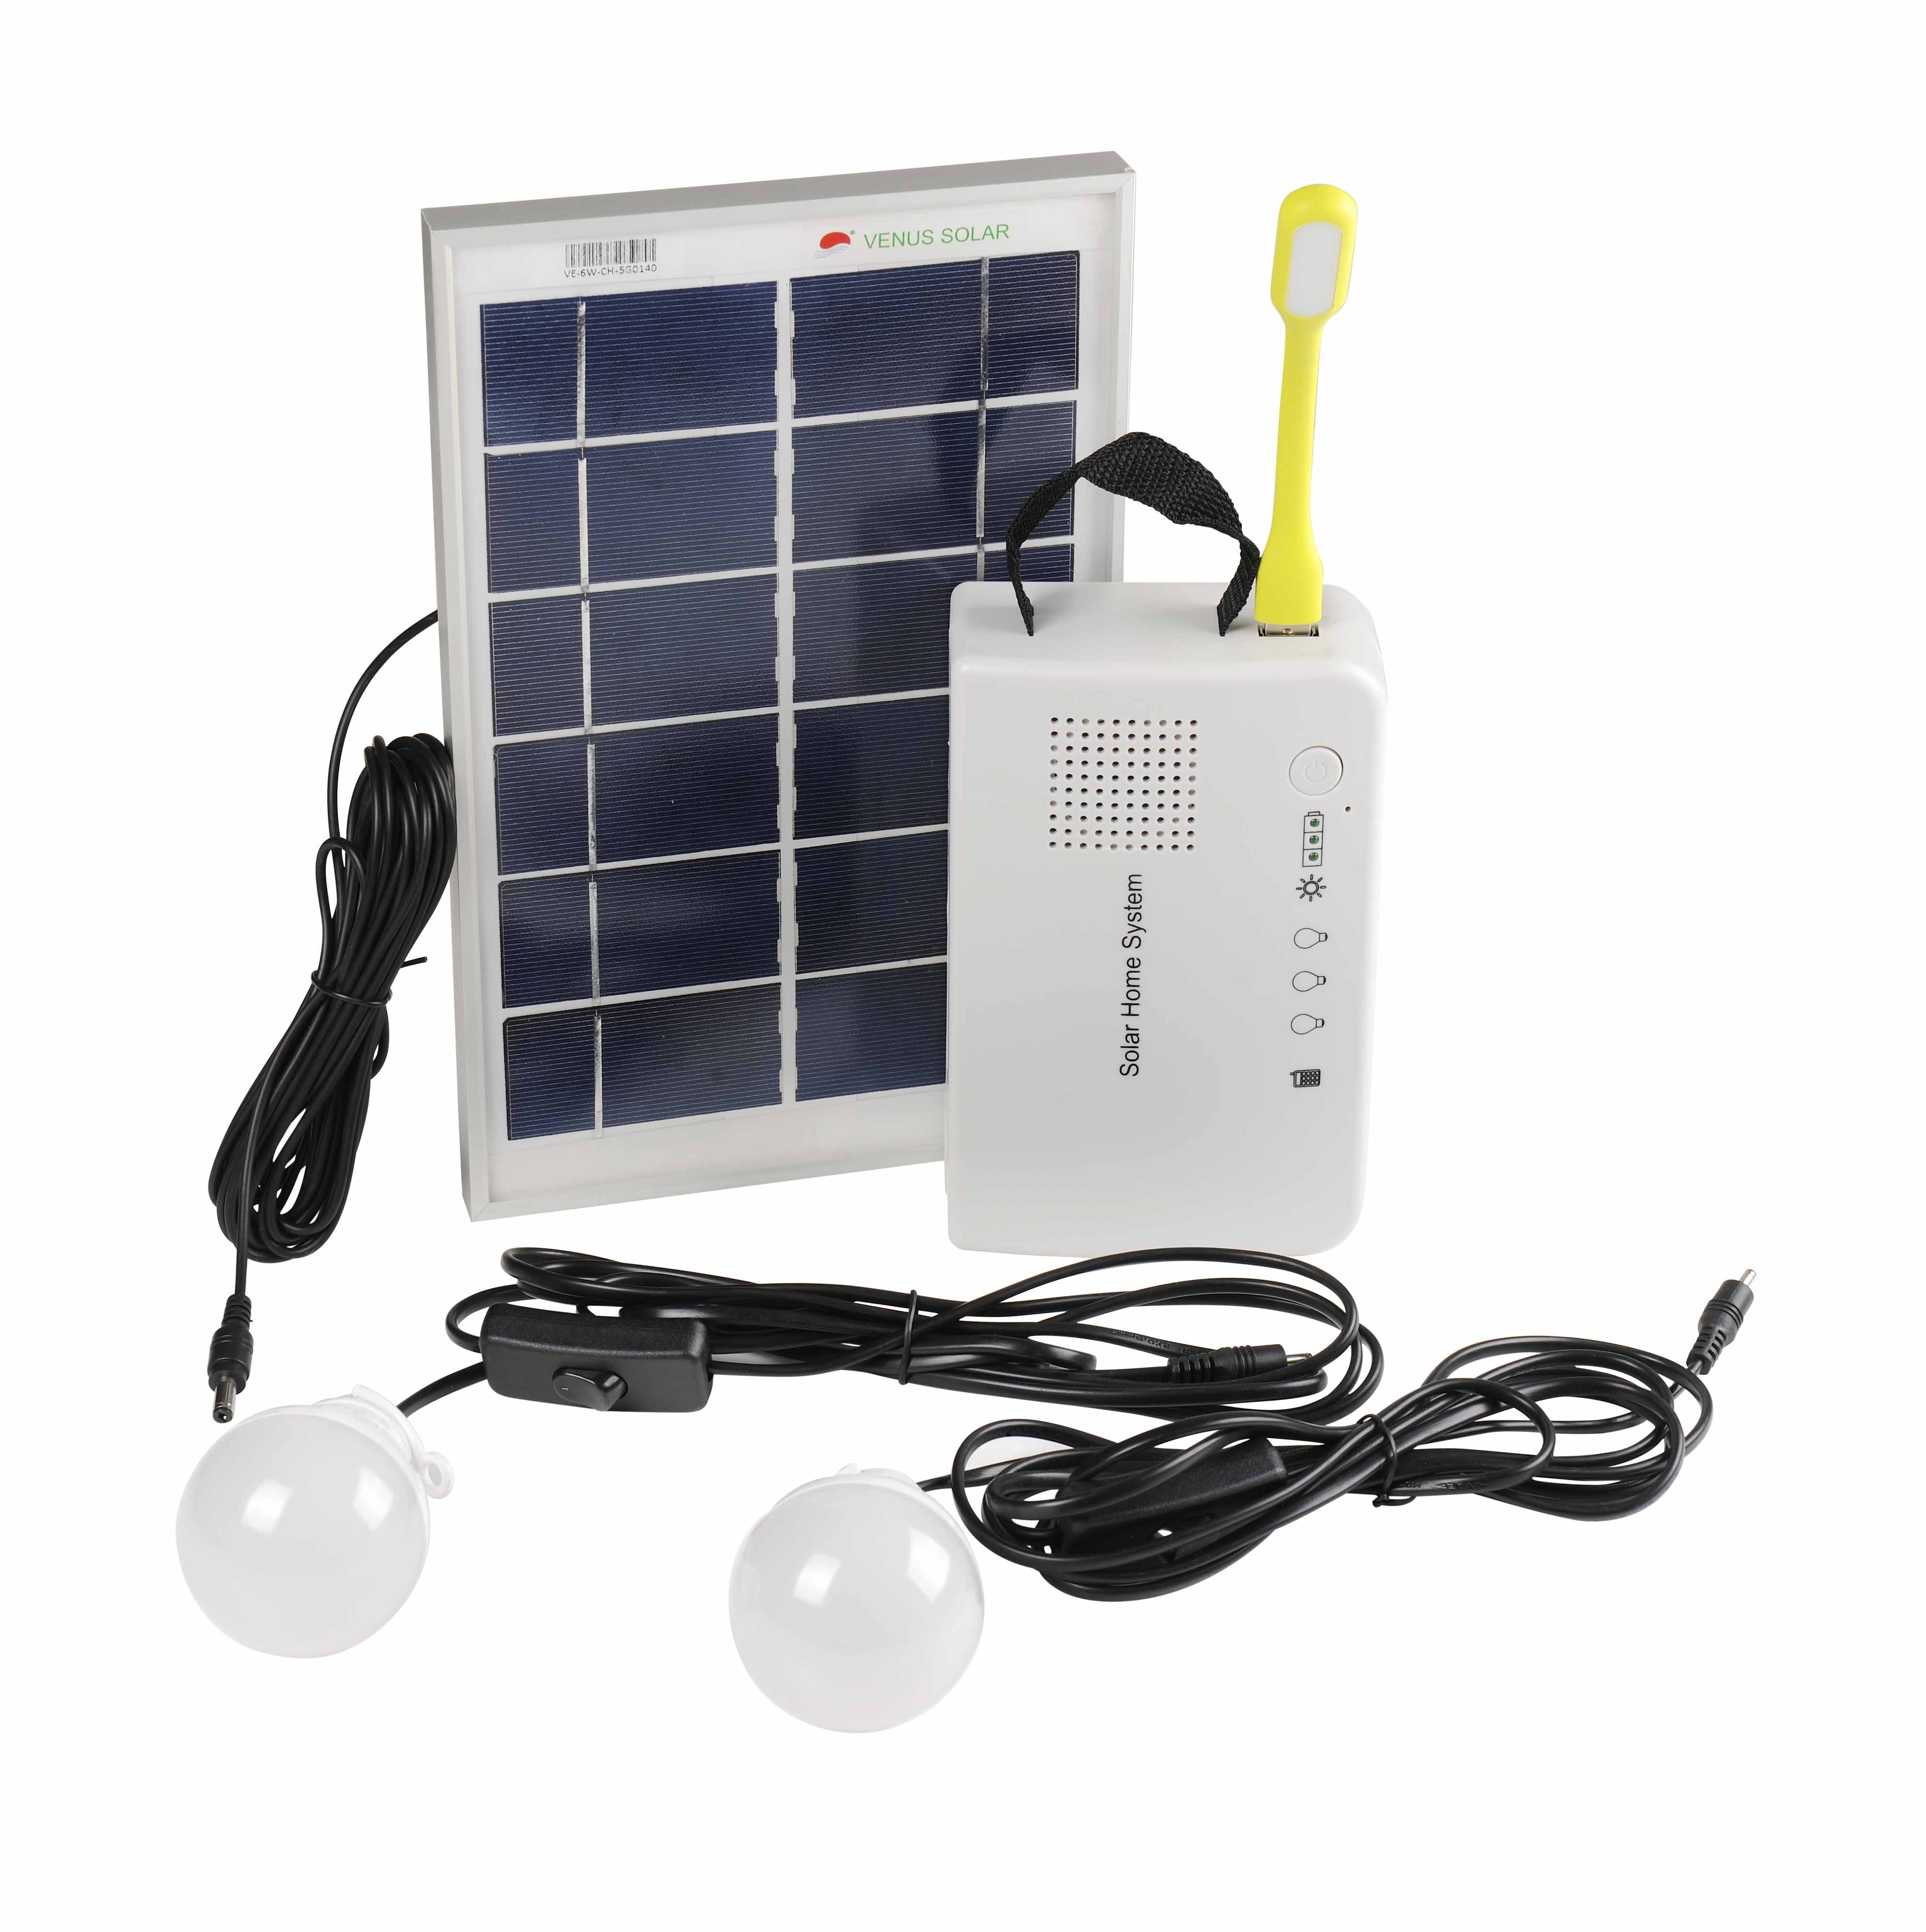 Solar DC power system